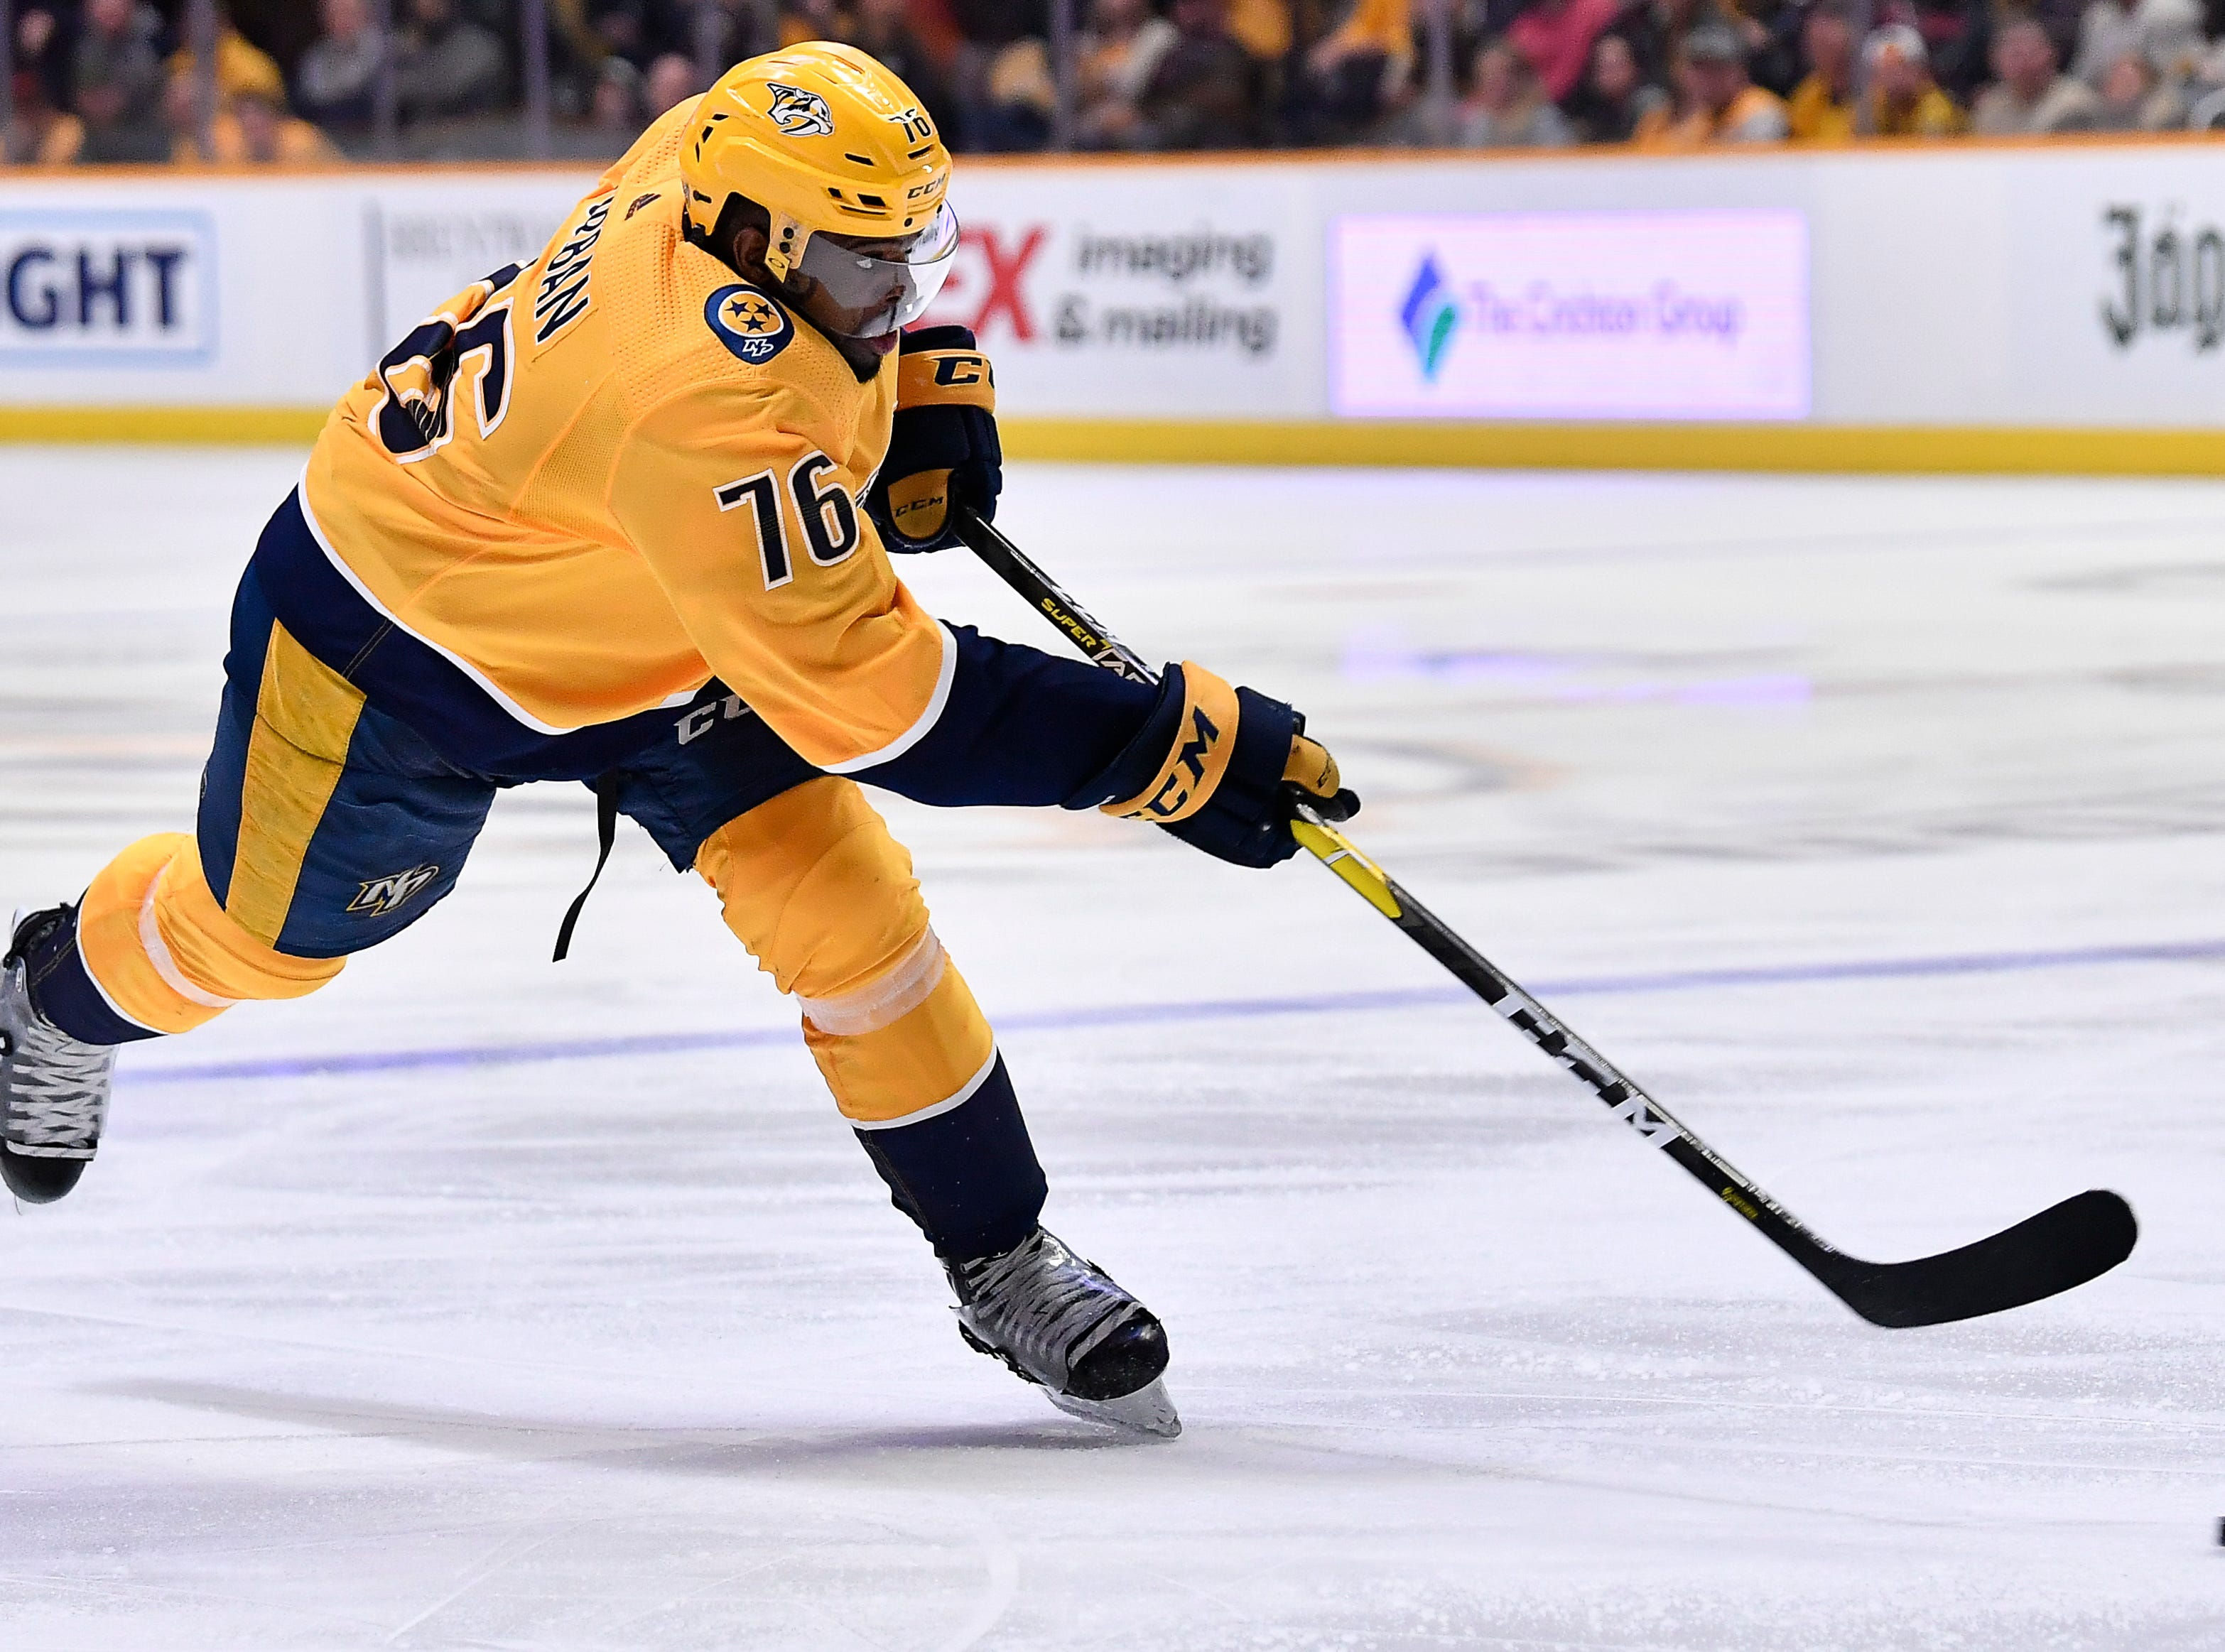 Predators defenseman P.K. Subban (76) shoots the puck during the third period against the Penguins at Bridgestone Arena Thursday, March 21, 2019 in Nashville, Tenn.